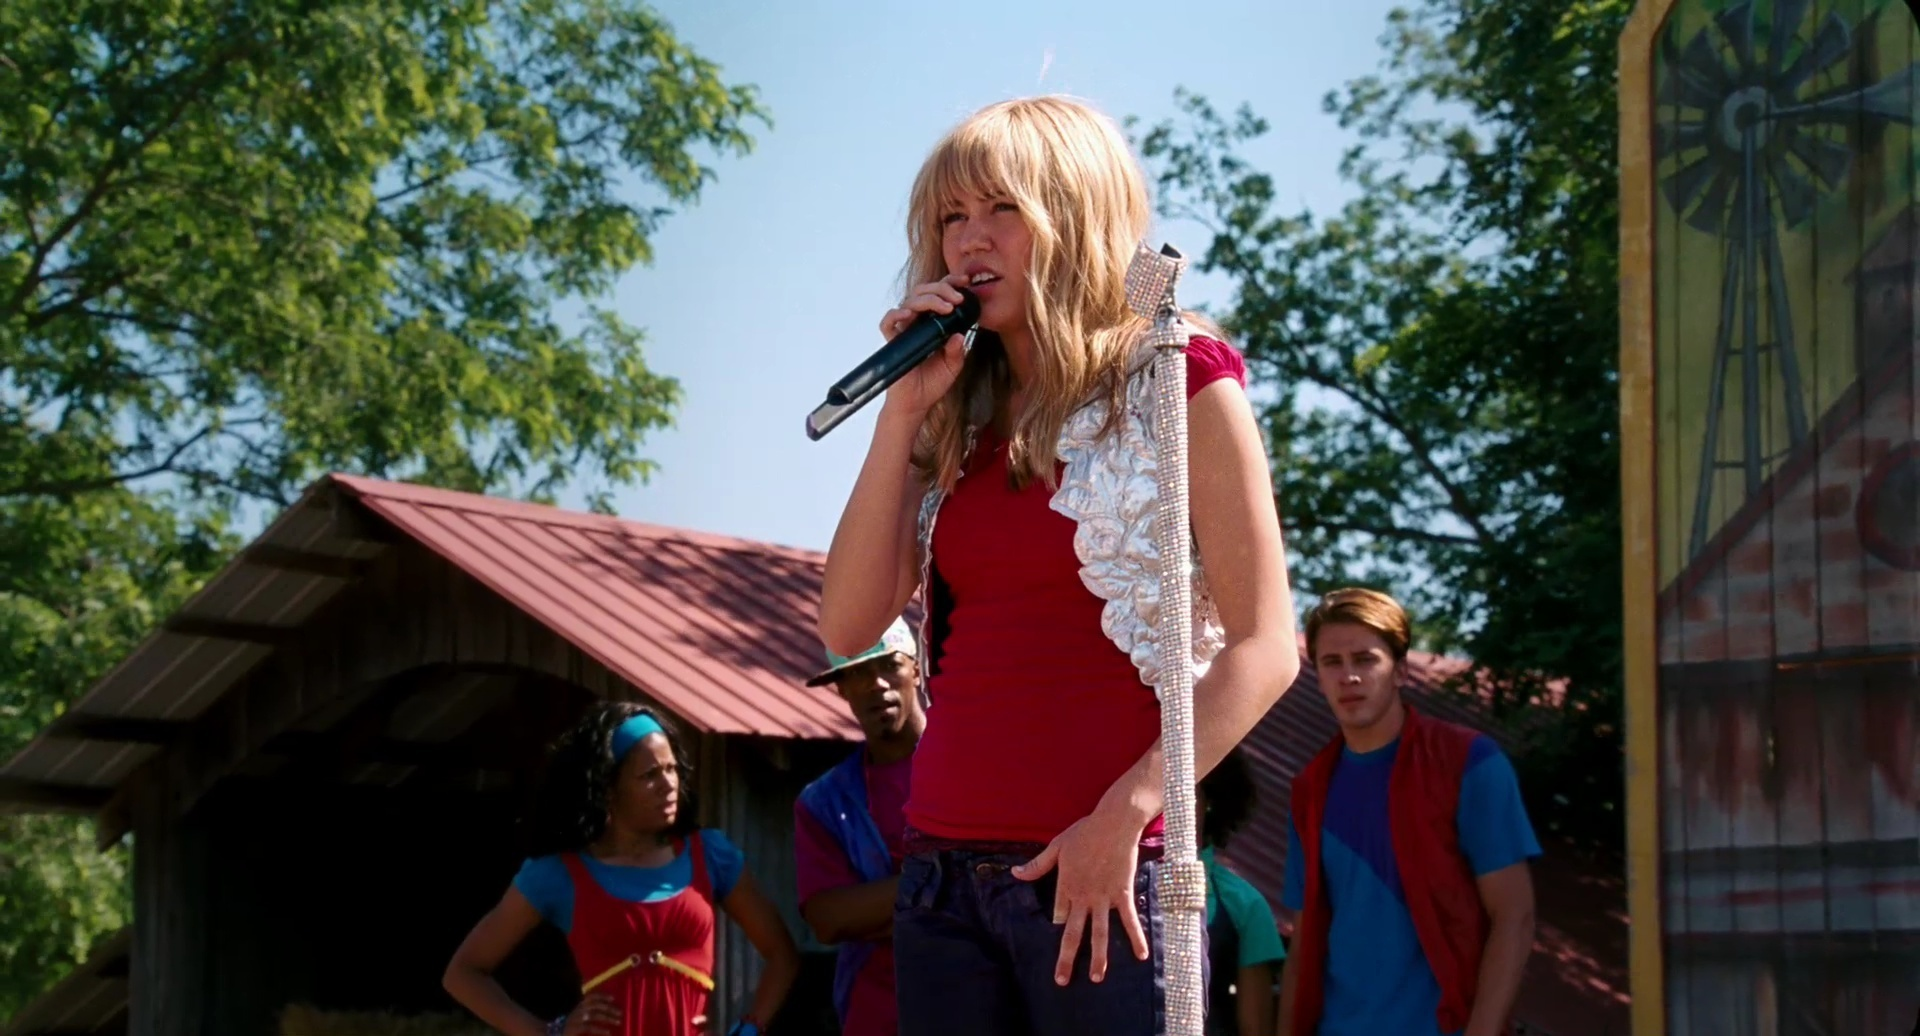 hannah montana the movie 1080p bluray x264 hd1080